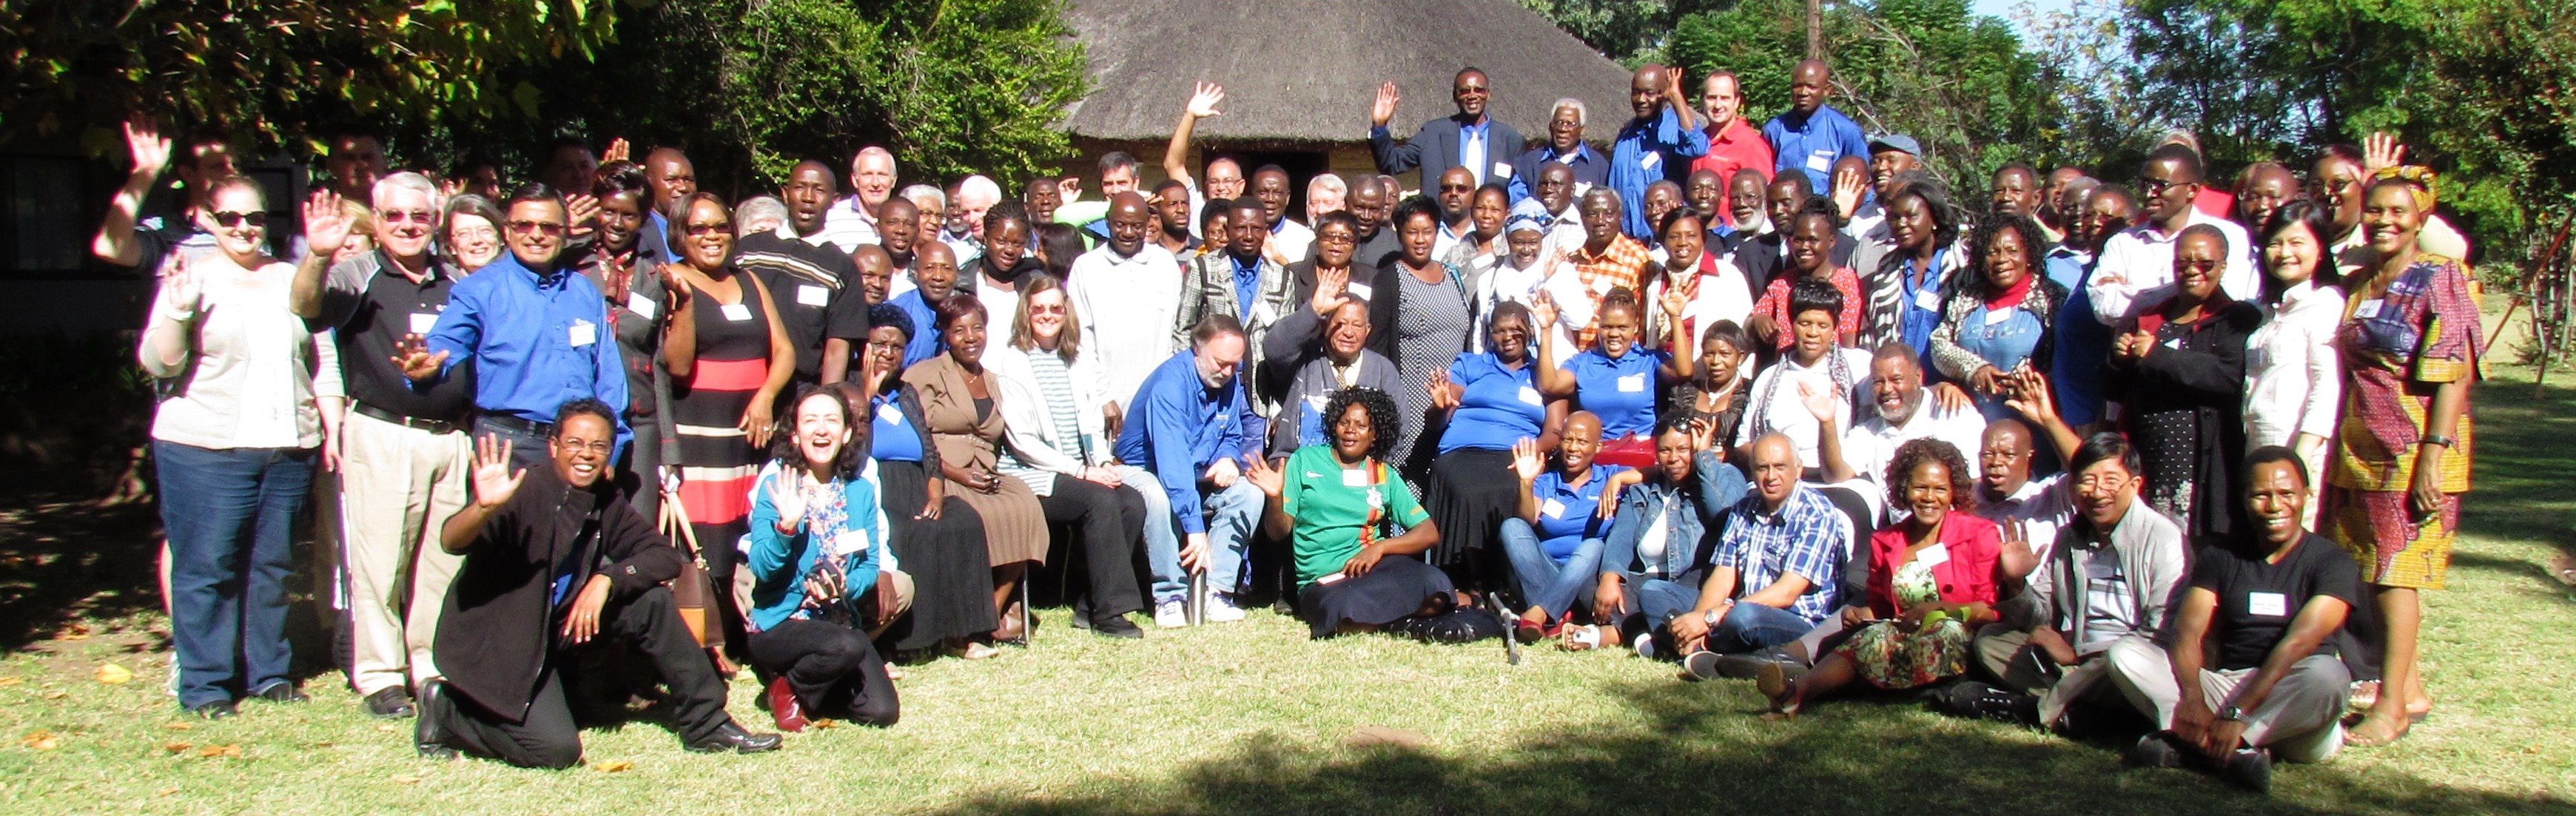 Conf Pan African group